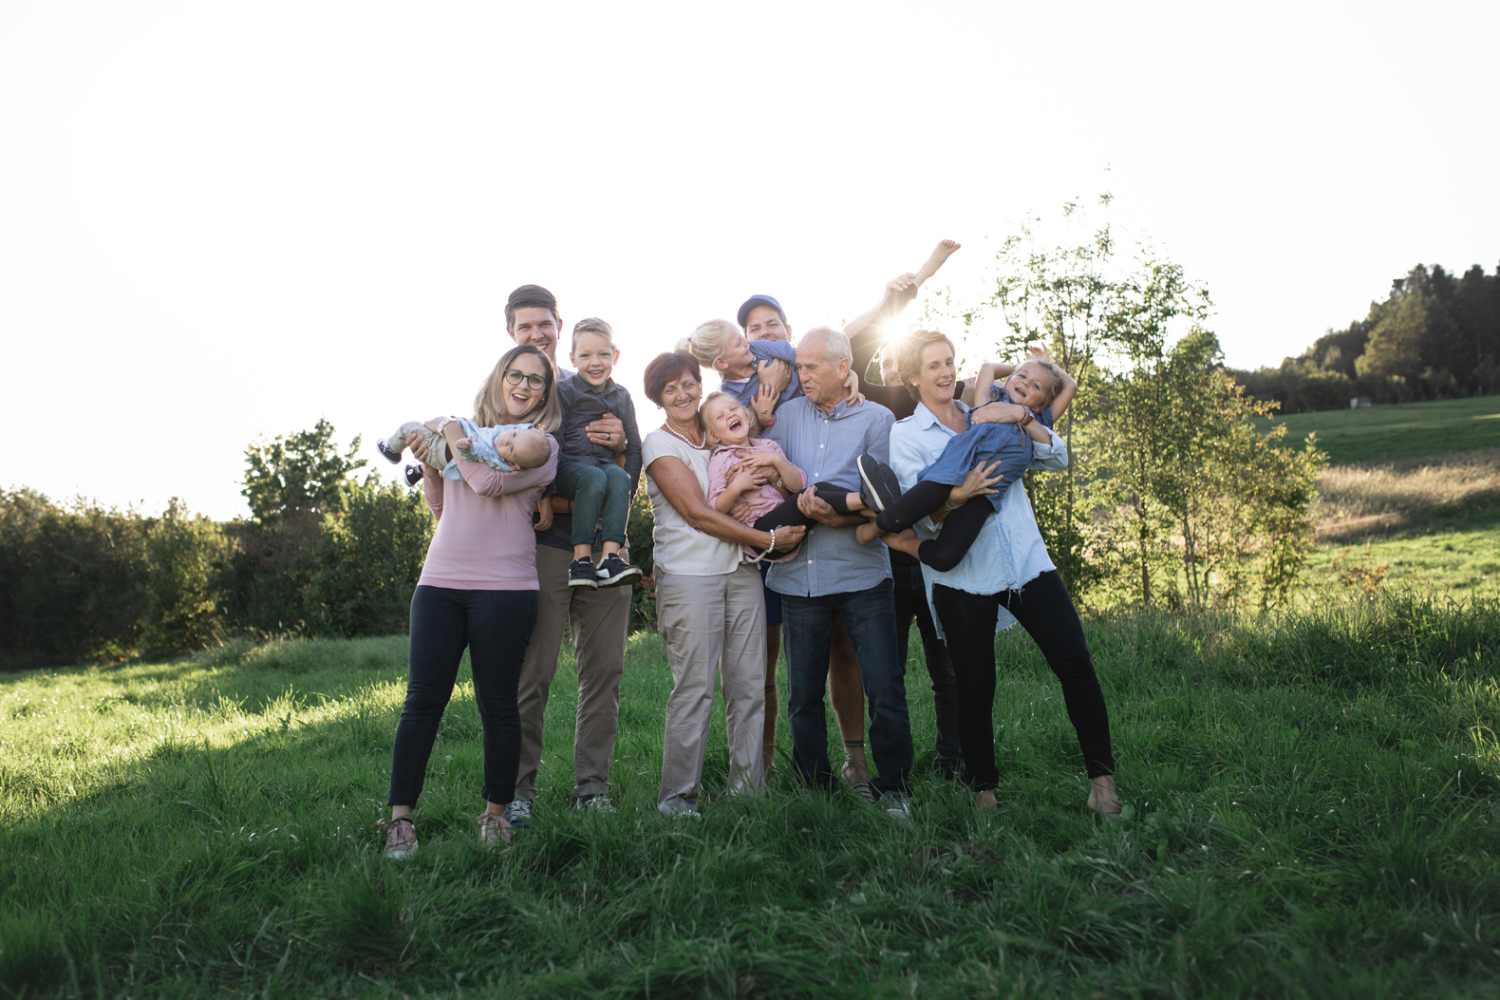 Familienshooting, Family Shooting, Generationen, Sursee, Zentralschweiz